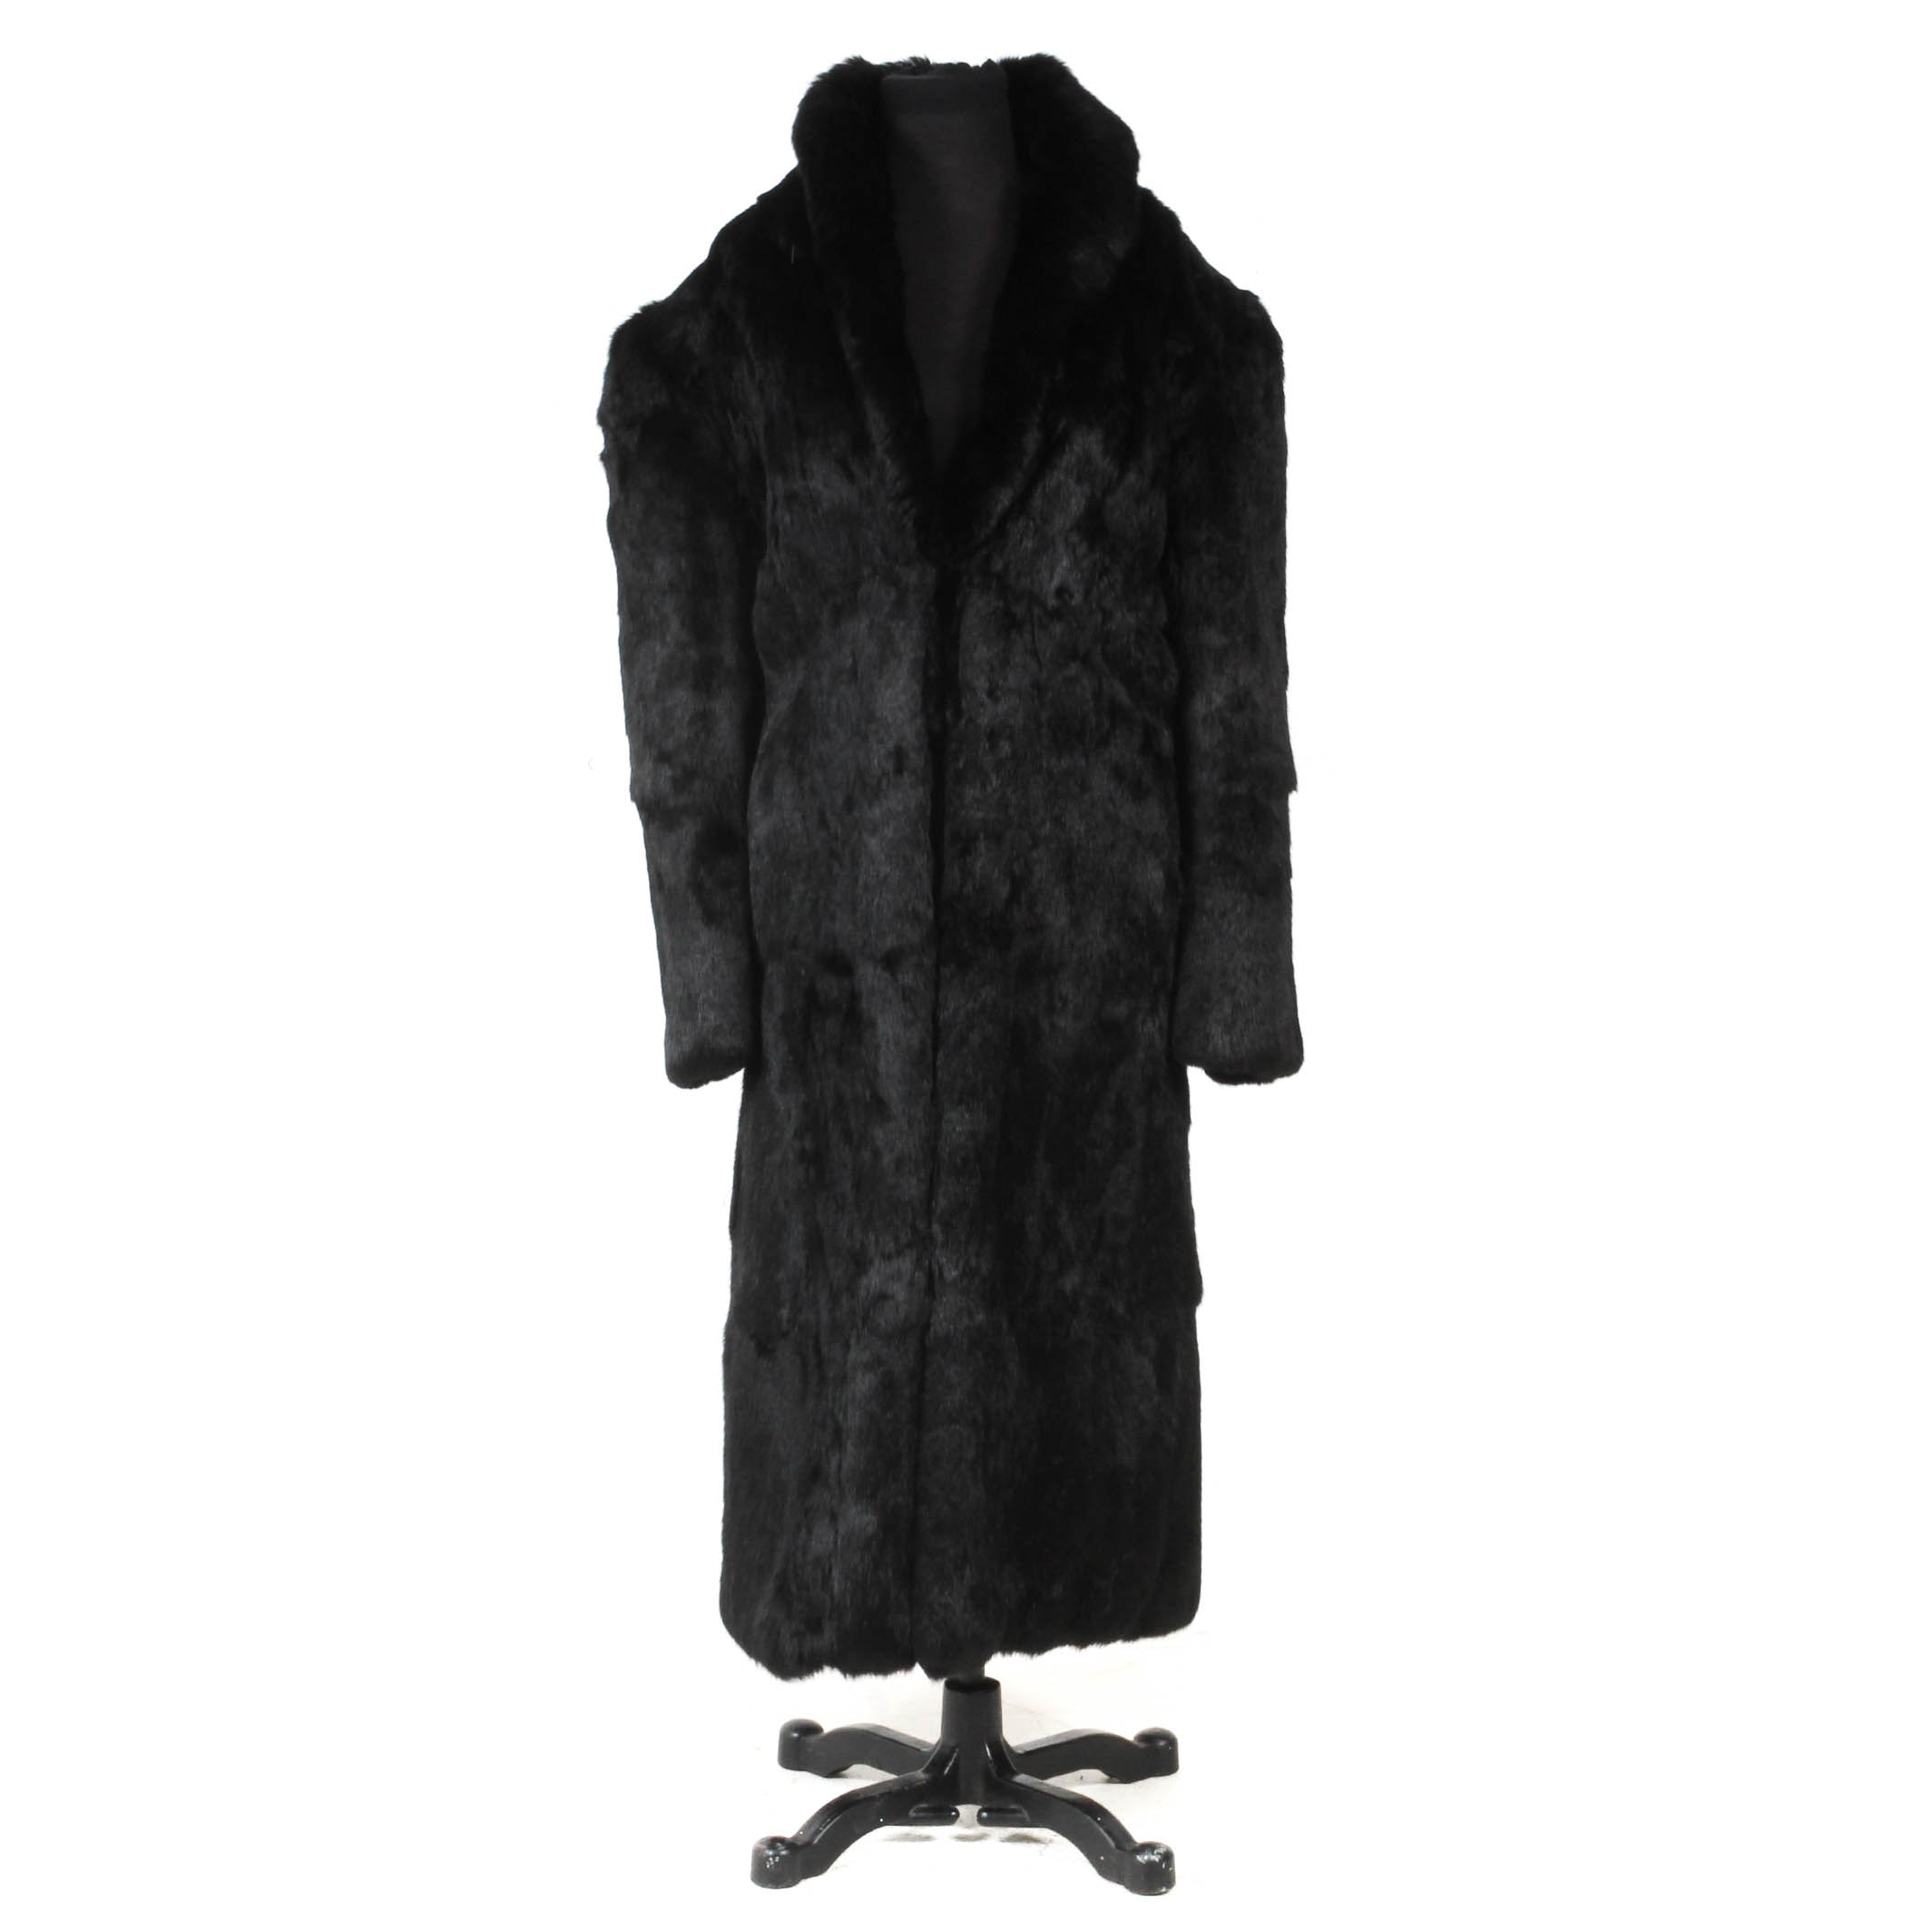 Black Full Skin Rabbit Fur Coat